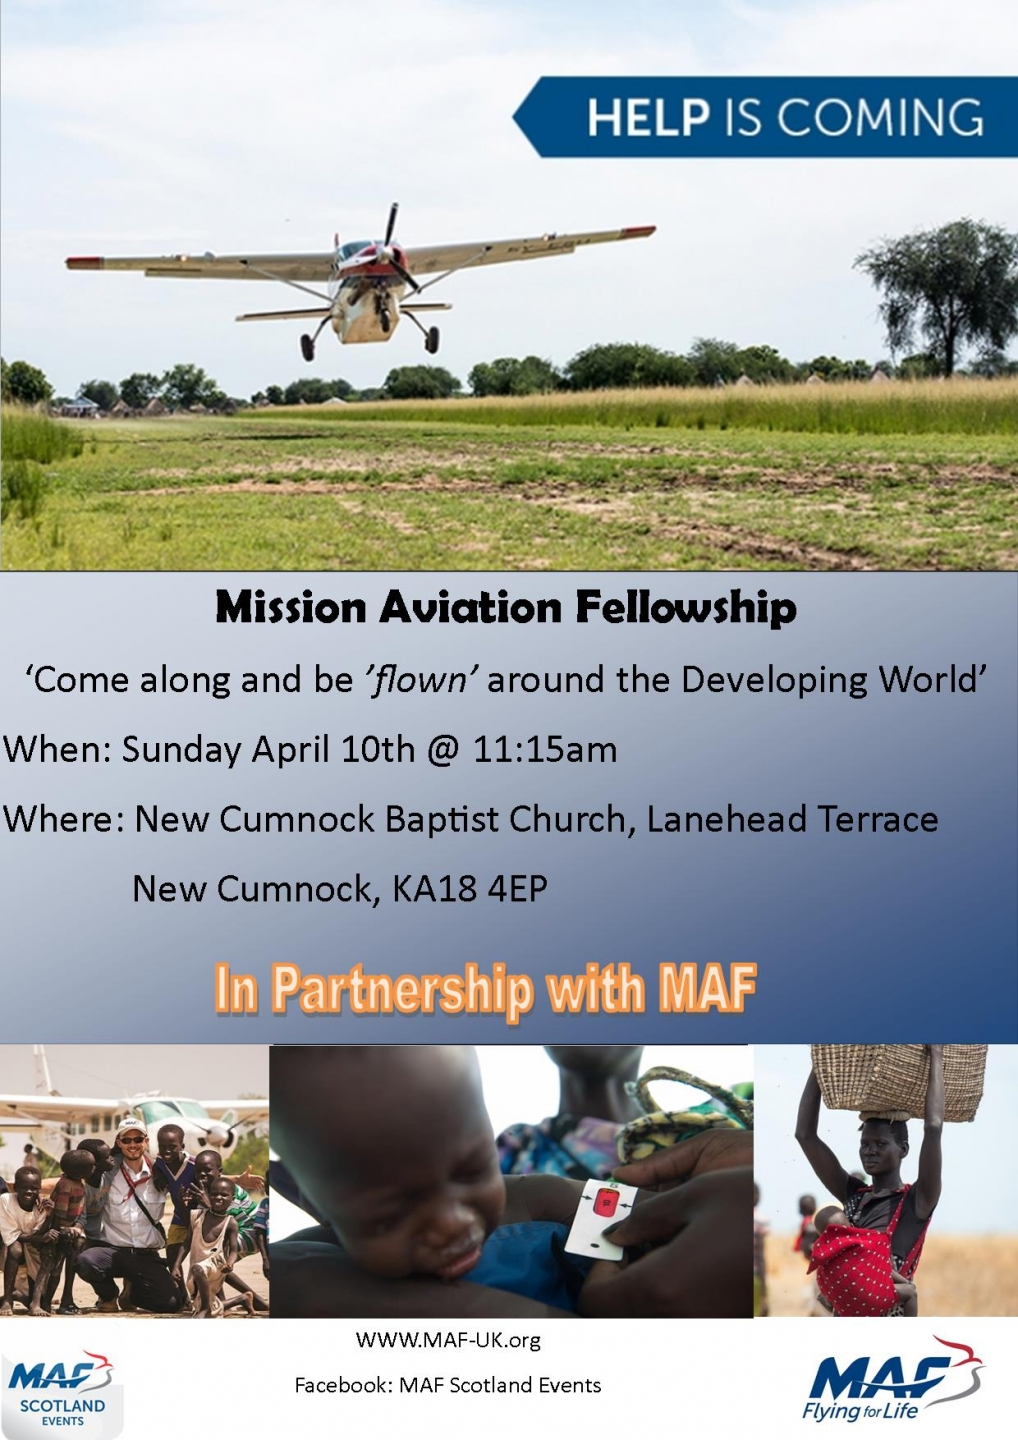 MAF event at New Cumnock Baptist Church